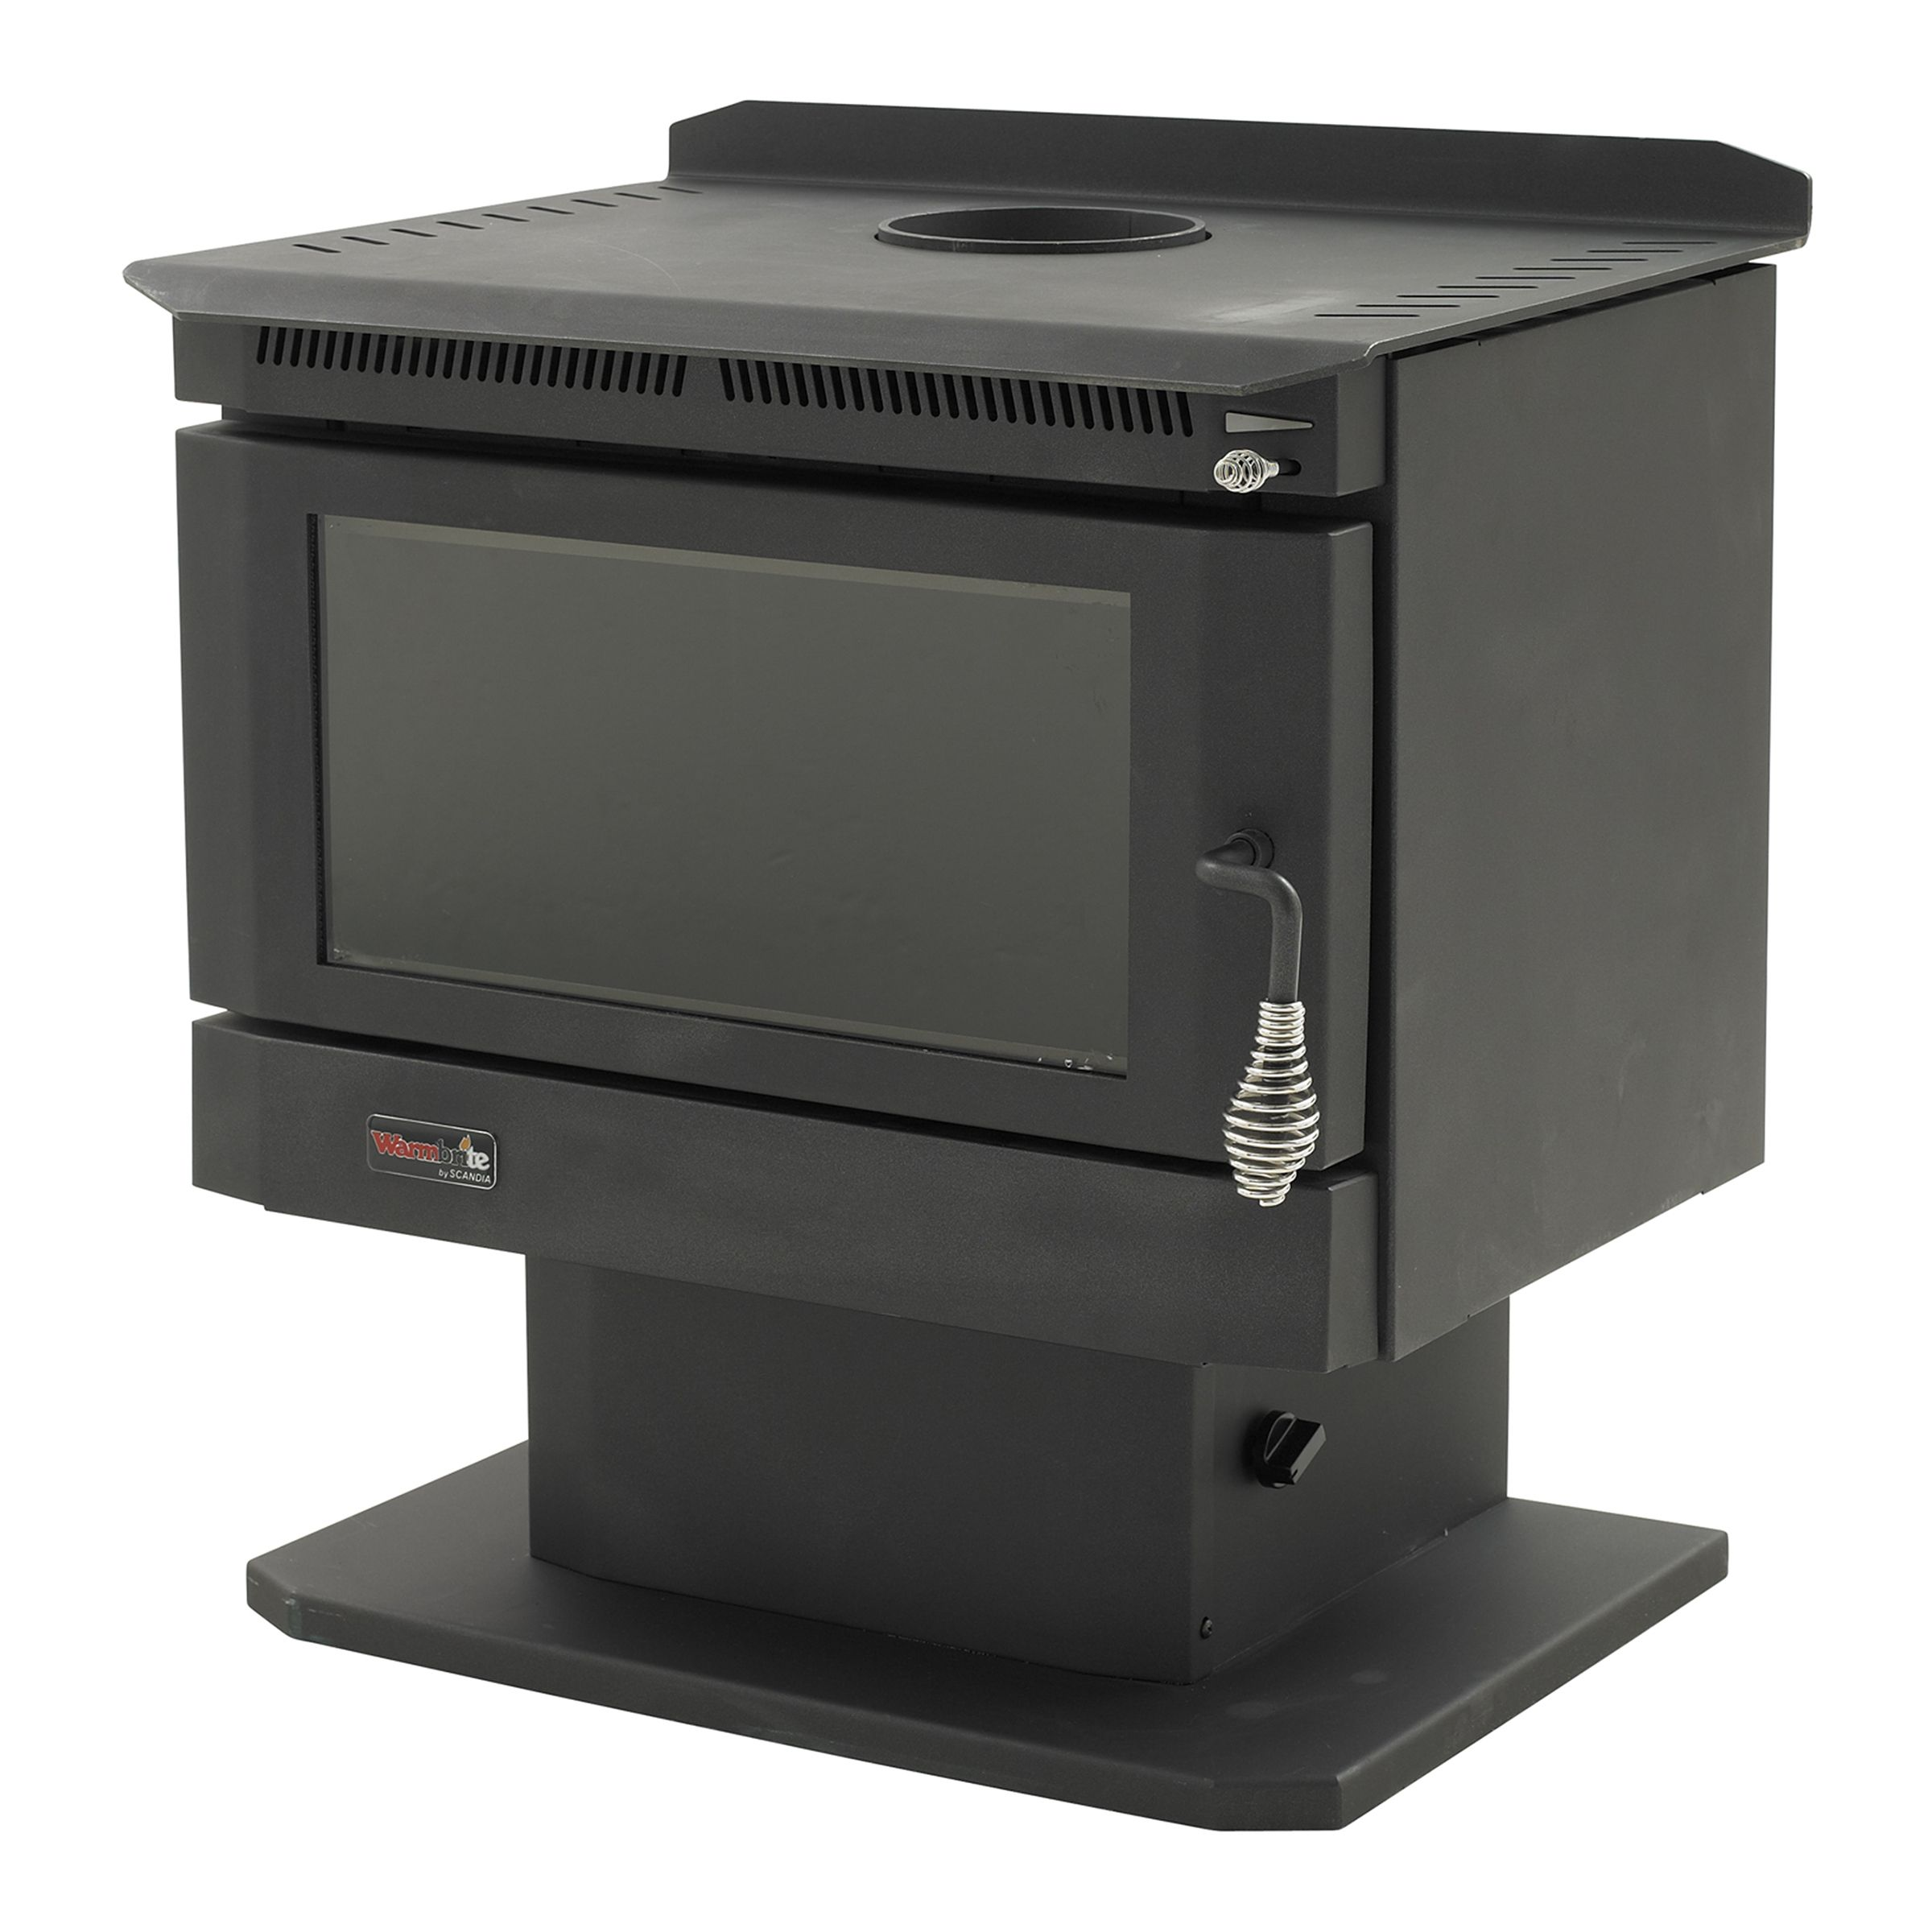 Fake Brick Wall Bunnings Scandia 200sqm Indoor Wood Heater With Fan Bunnings Warehouse